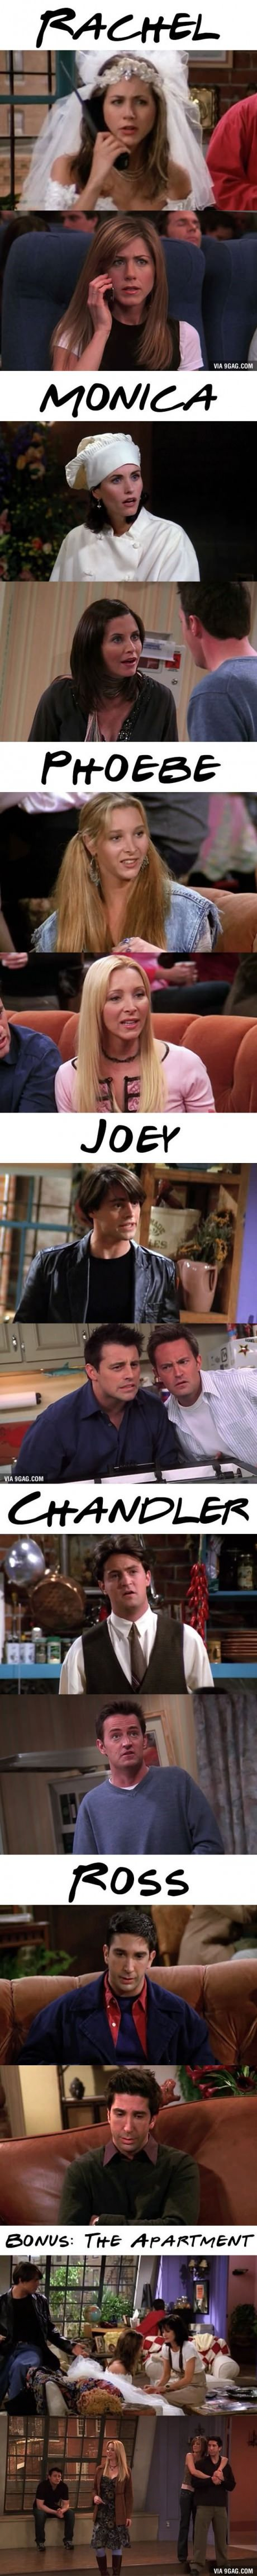 """The Cast Of """"Friends"""" On The First Episode (1994) Vs. The Last Episode (2004)"""